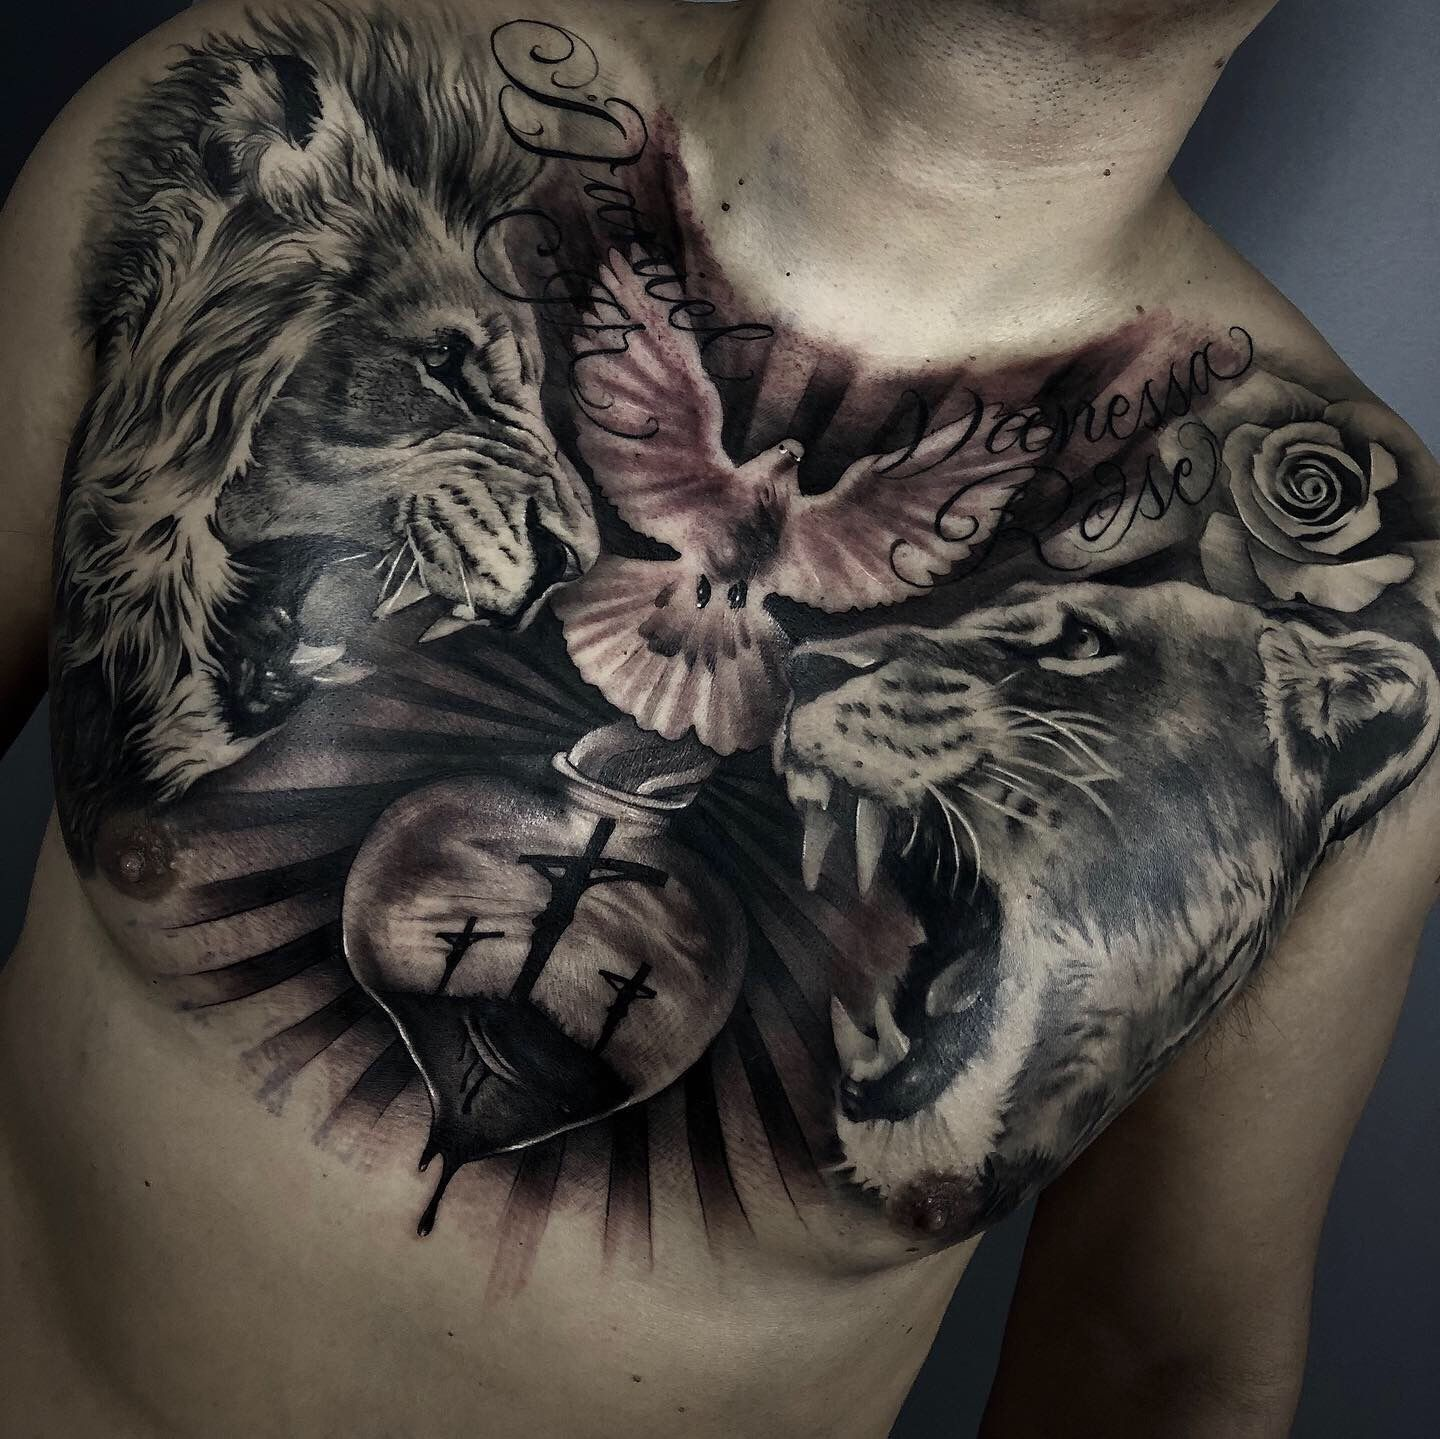 Chest tattoo lion tattoo lioness tattoo (With images